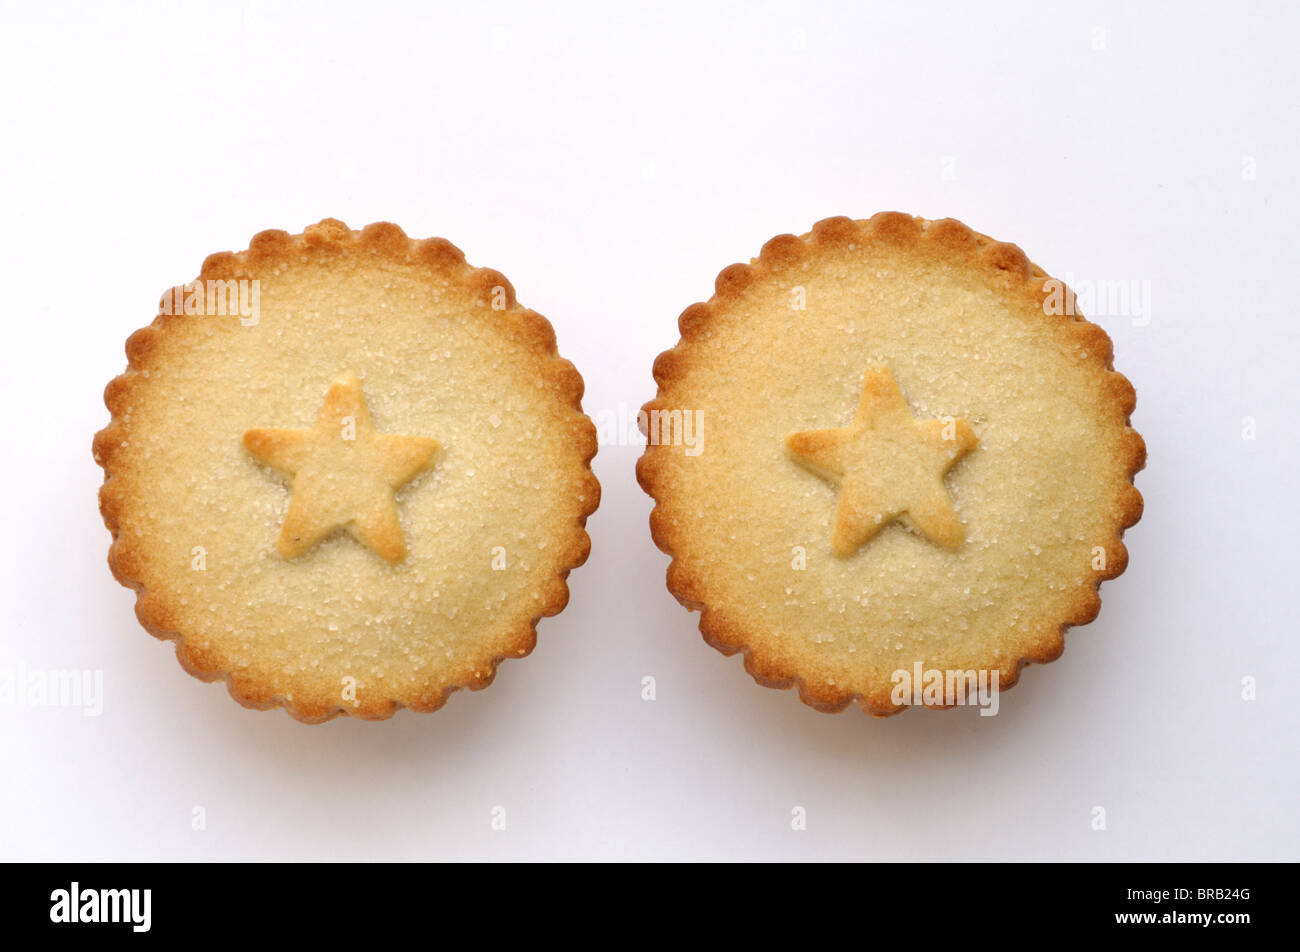 Two mince pies. - Stock Image